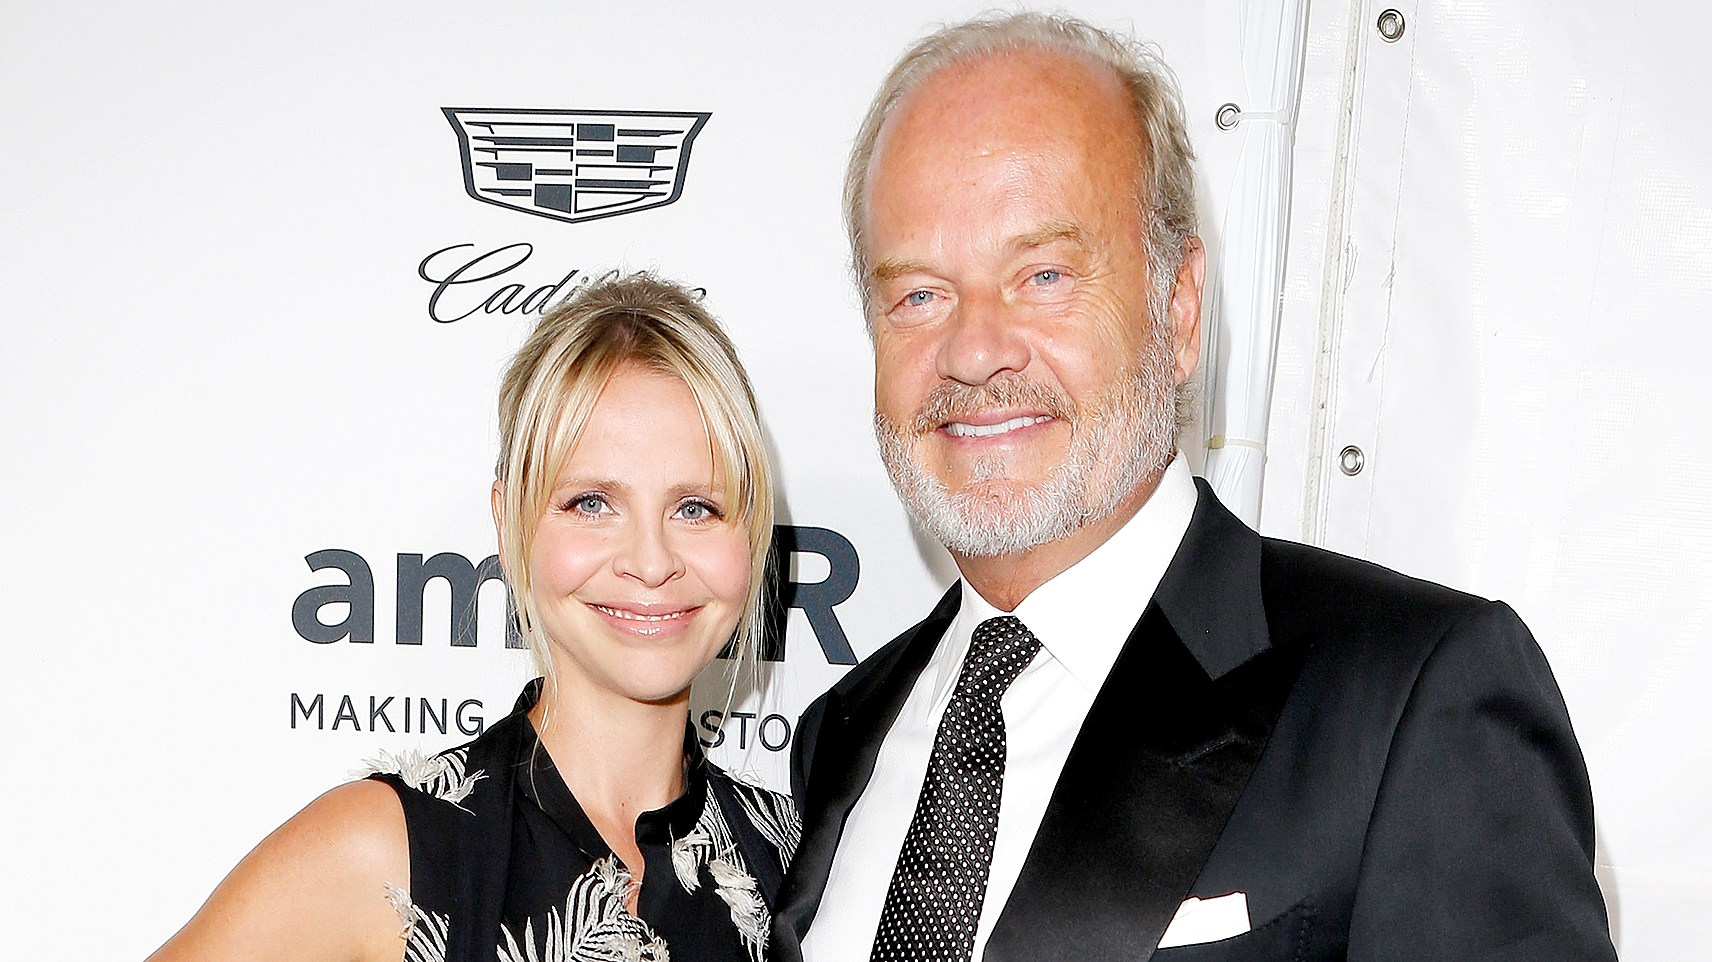 Kelsey Grammer and Kayte Walsh attend amfAR's Inspiration Gala Los Angeles at Milk Studios on October 27, 2016 in Hollywood, California.